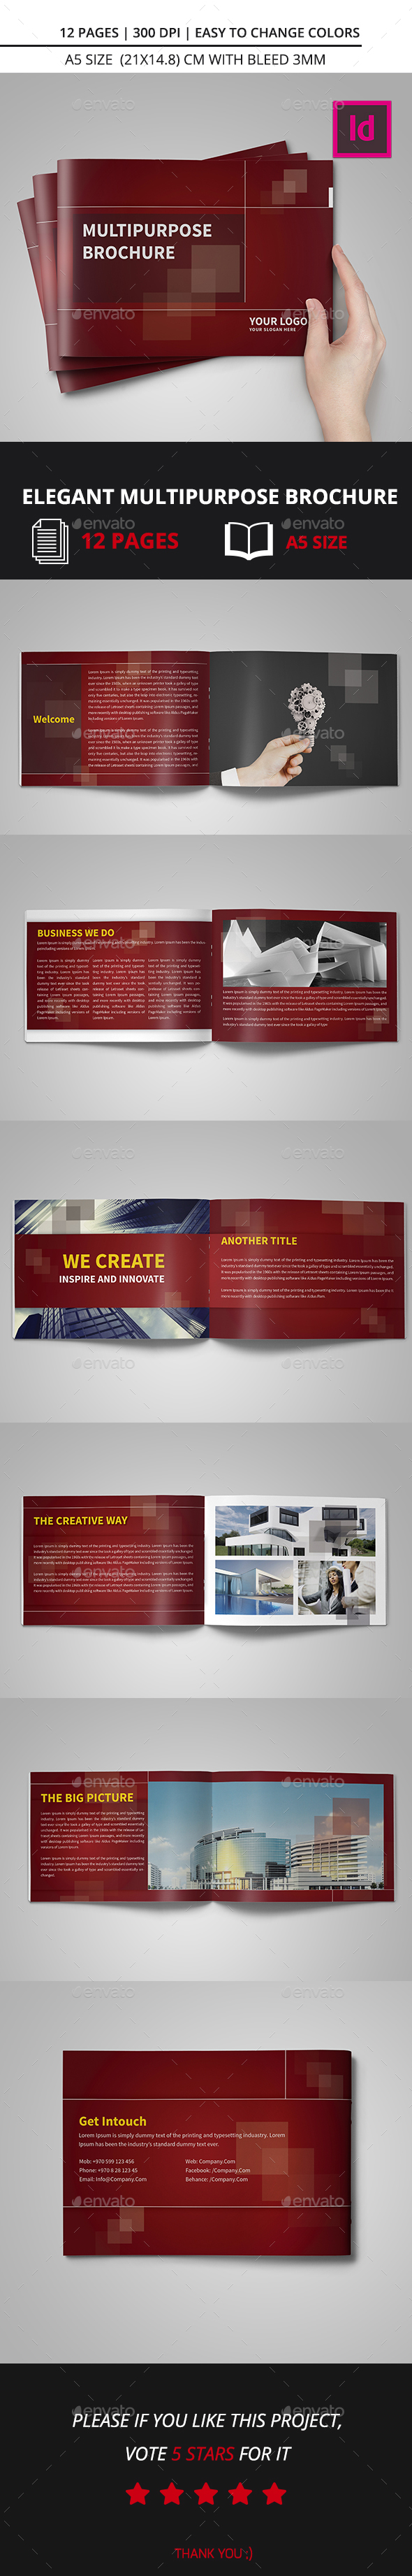 Elegant Multipurpose Brochure A5 - Corporate Brochures